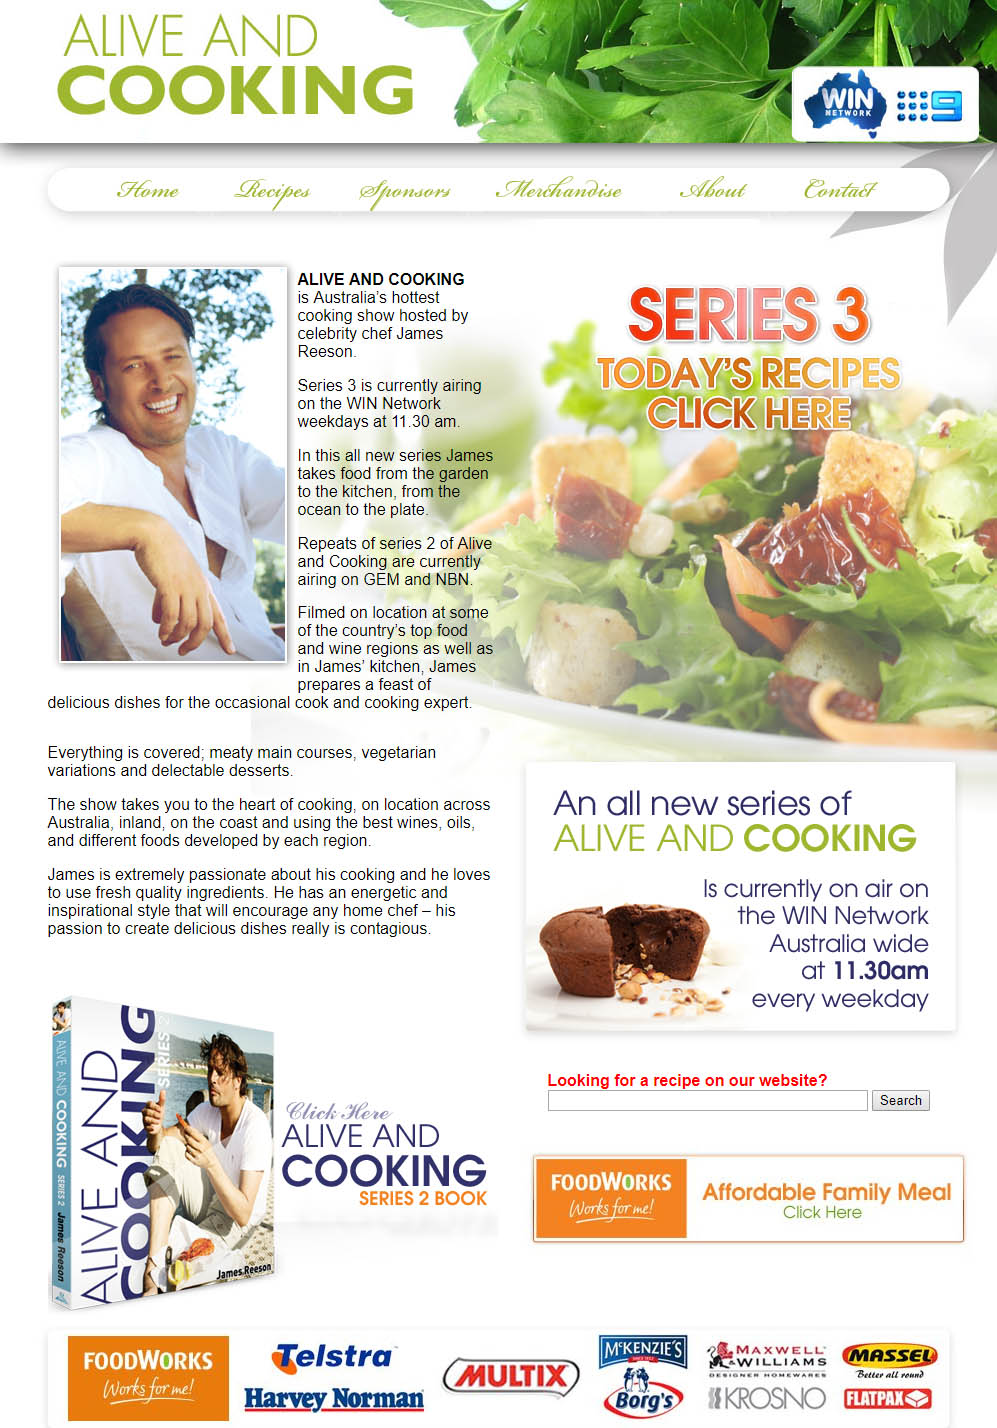 Alive and Cooking Website Design